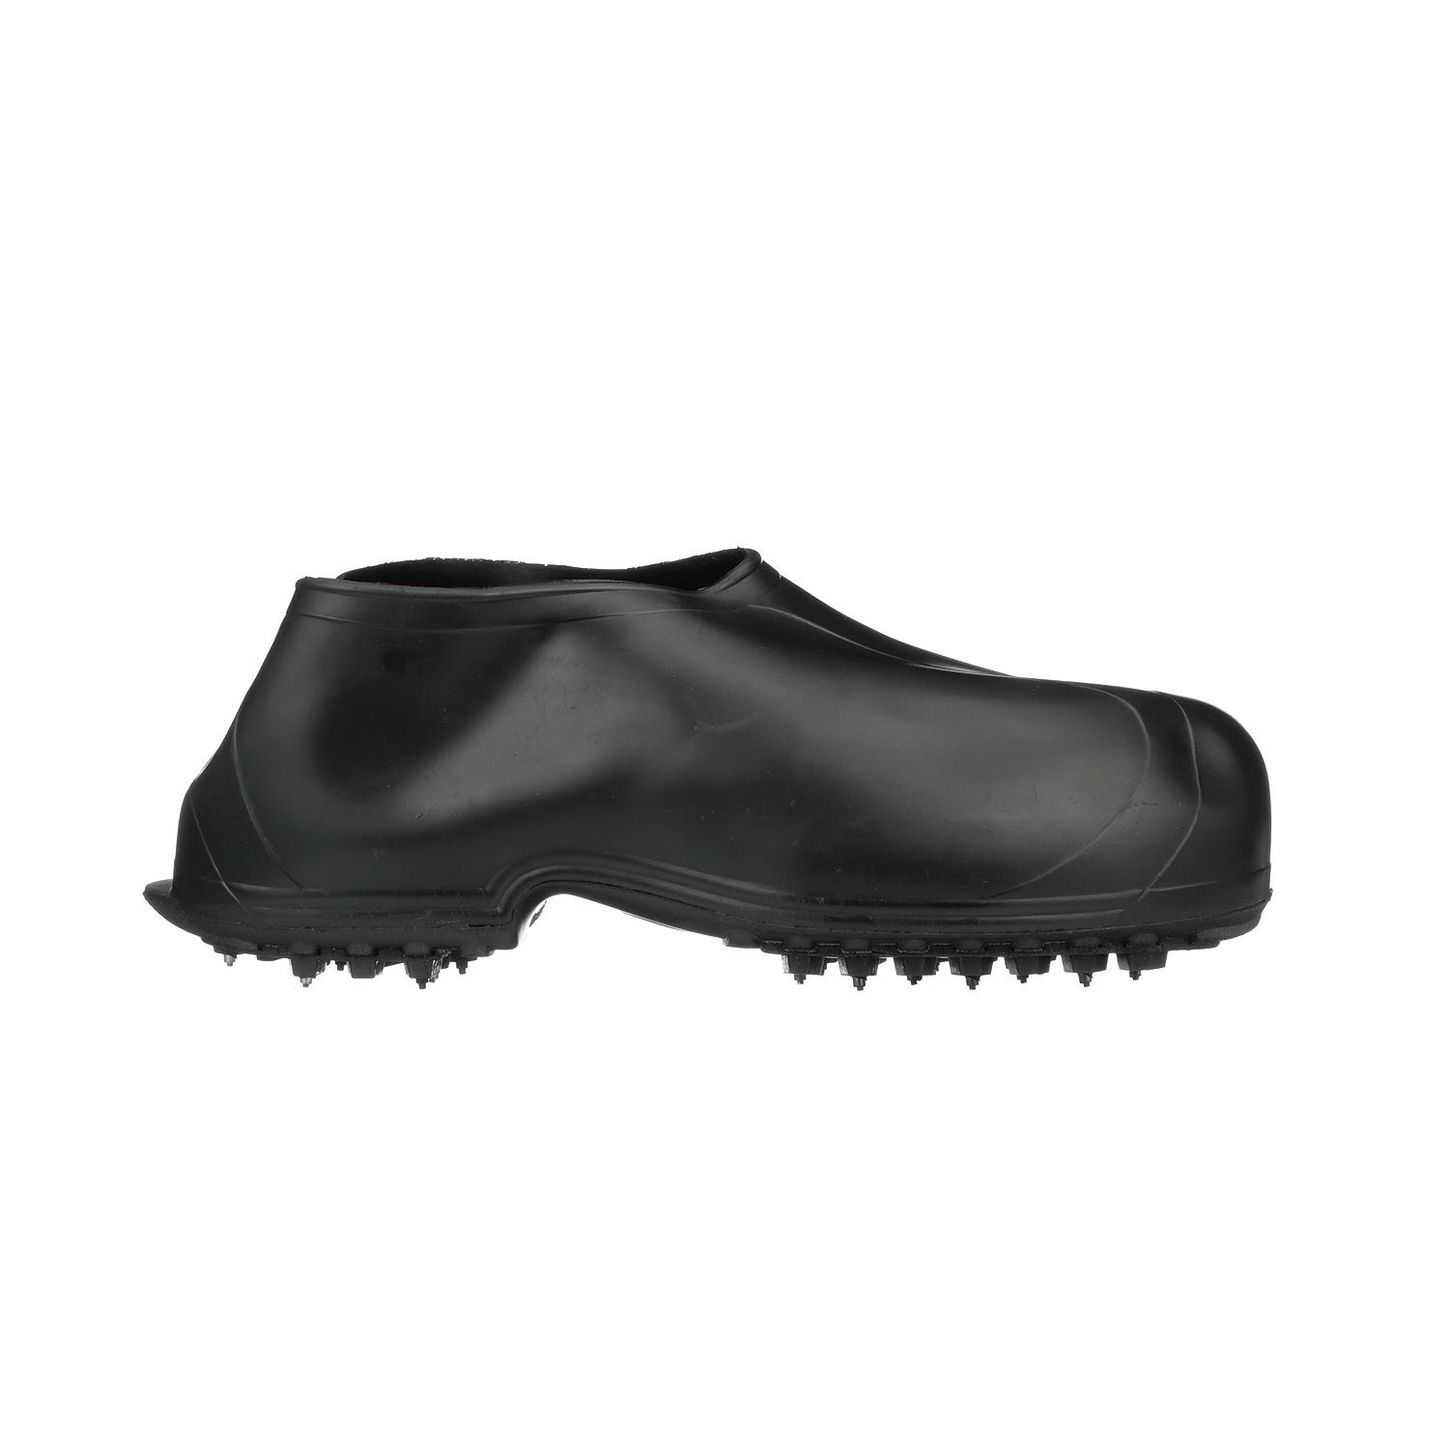 tingley-ice-traction-rubber-overshoes-1350-with-steel-studs-side.jpg